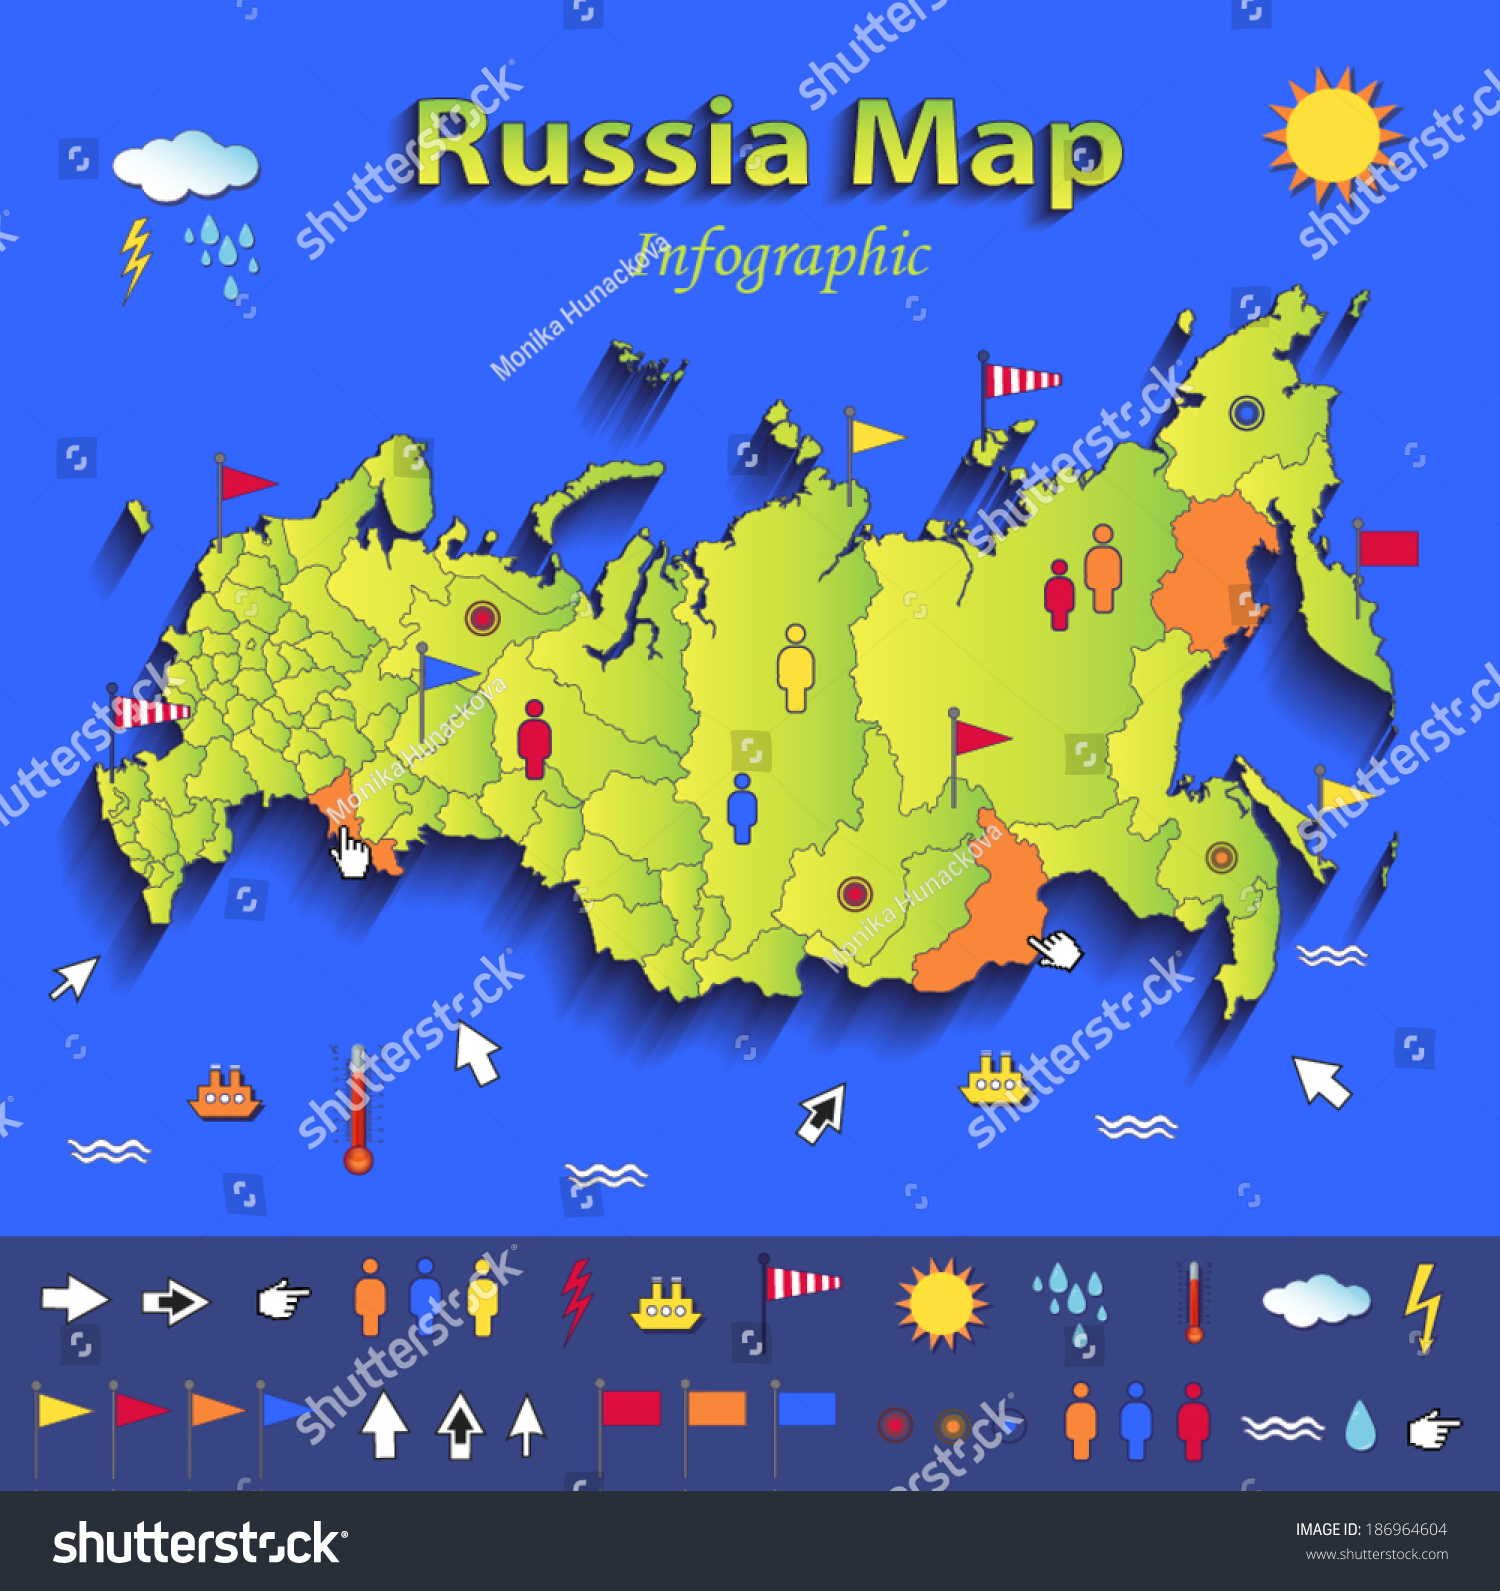 Russia Map Infographic Political Map Blue Stock